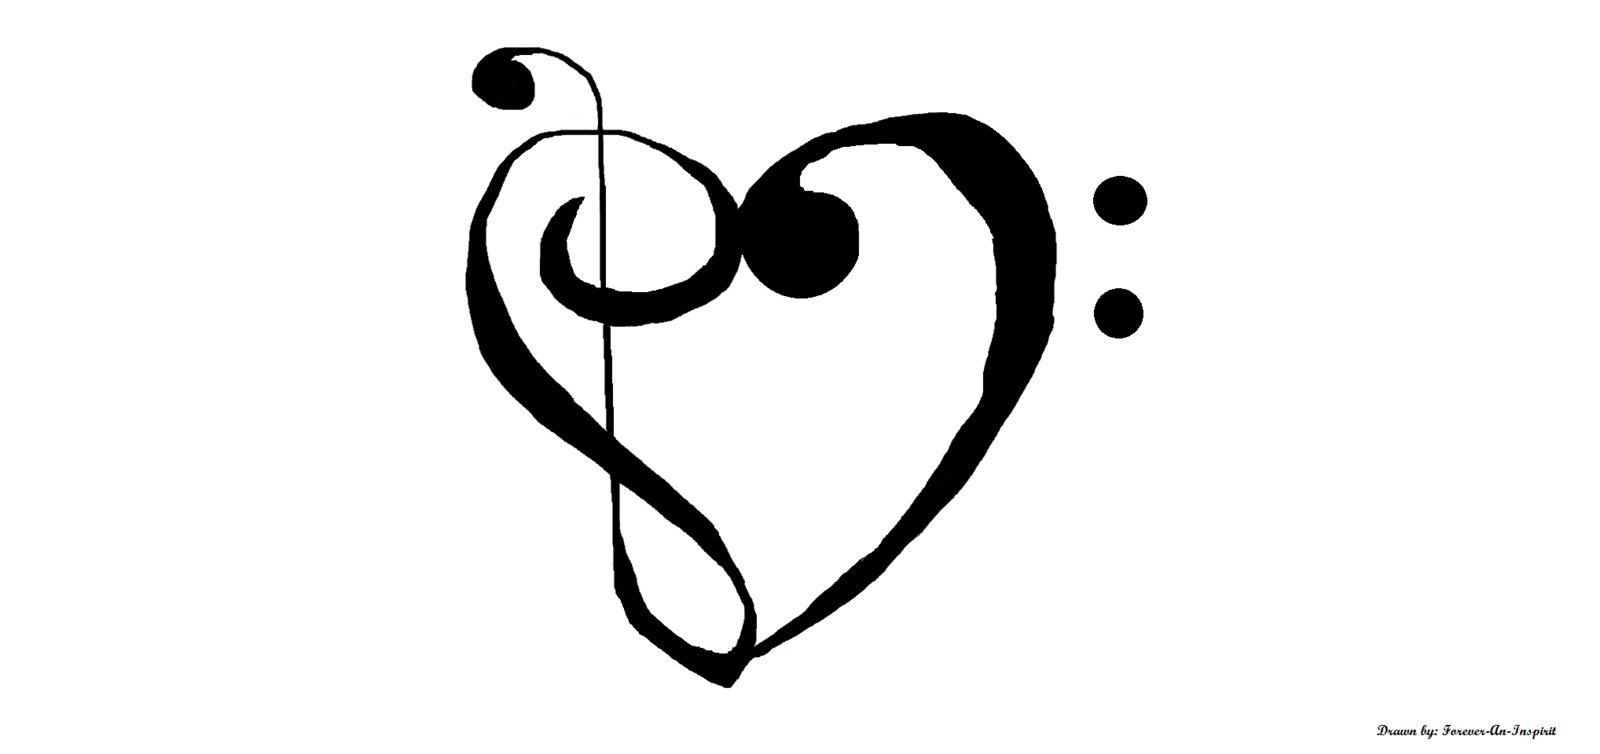 Treble Clef Bass Clef Heart Clipart - Treble And Bass Clef ... vector library library